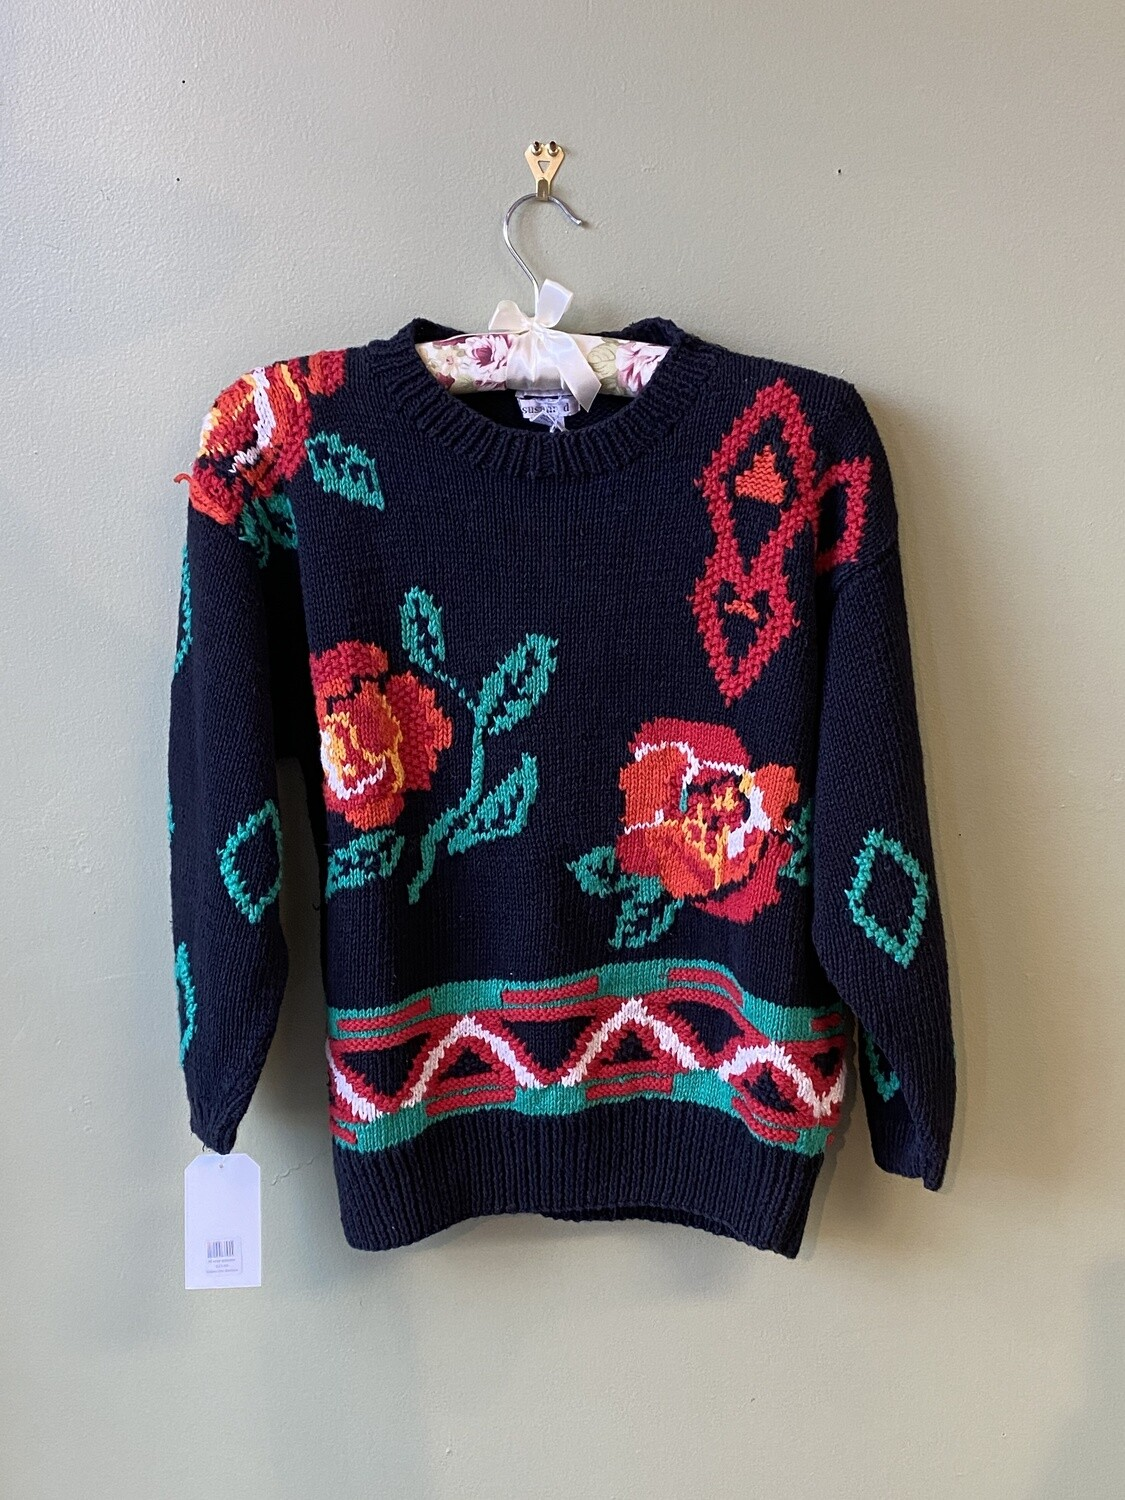 Susann D. Handknitted, Cotton-blend, Navy Sweater with Roses, Size M